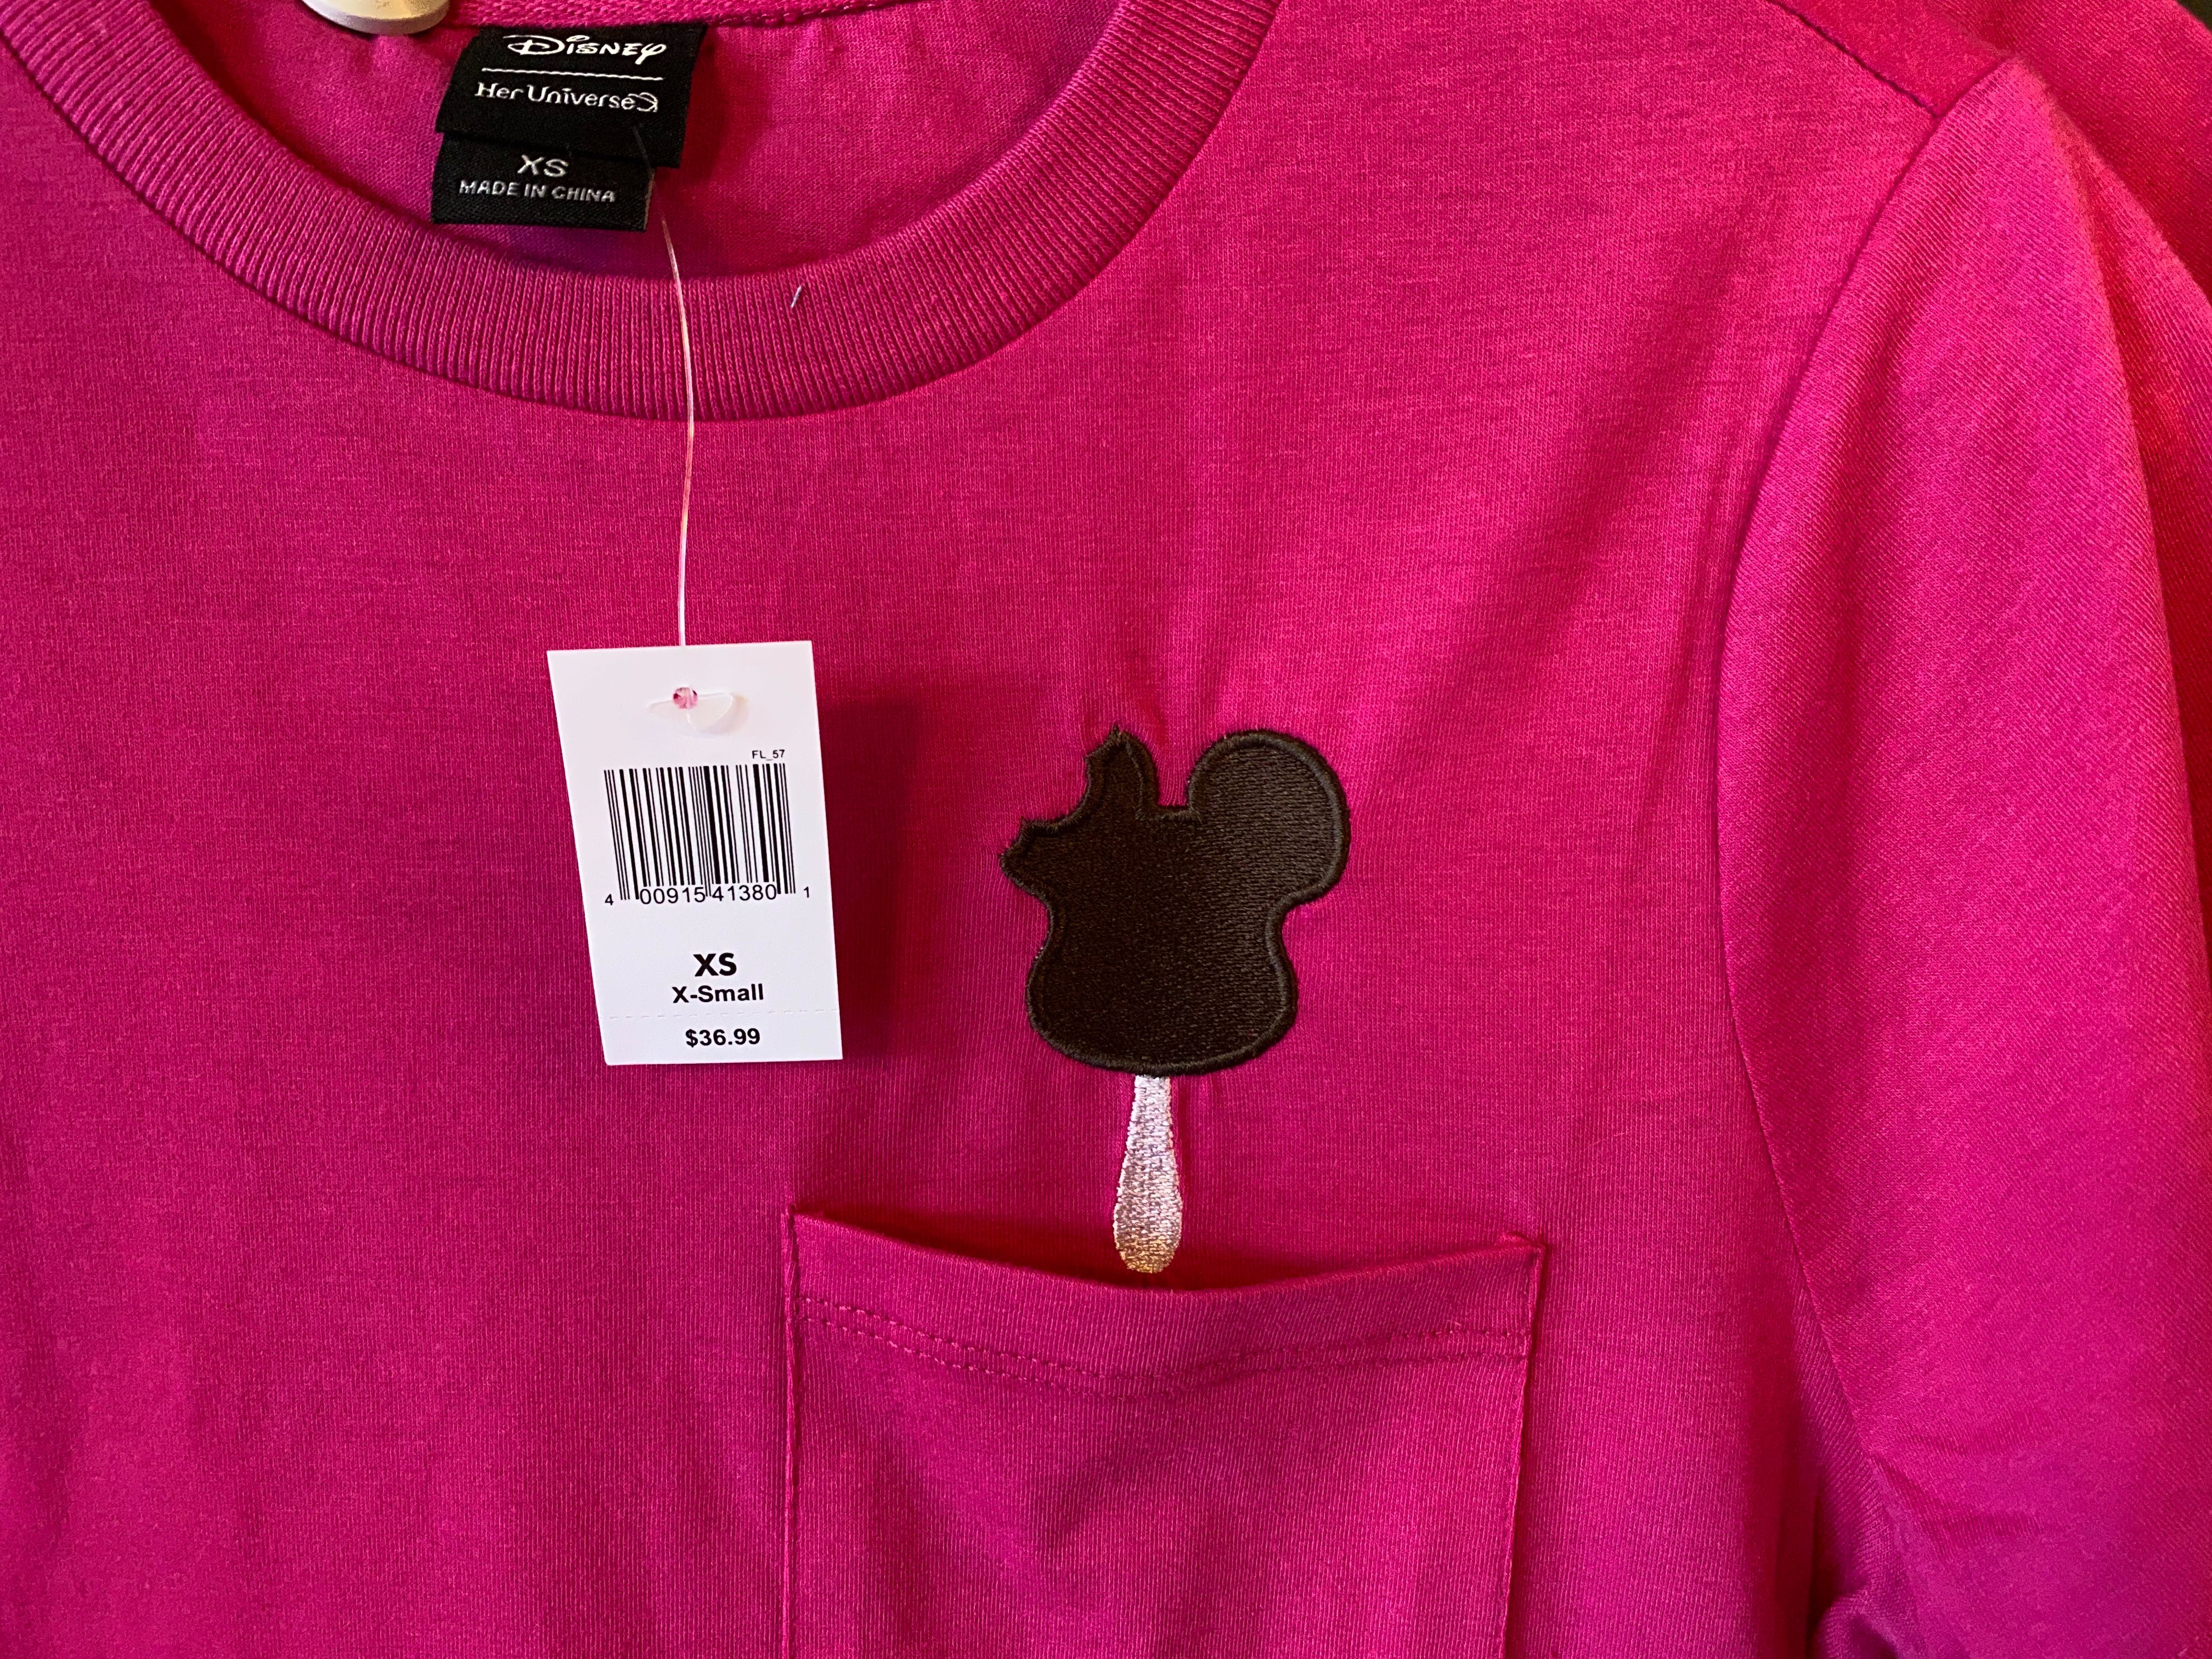 disneyland-icon-merch-02-23-2020-2.jpg